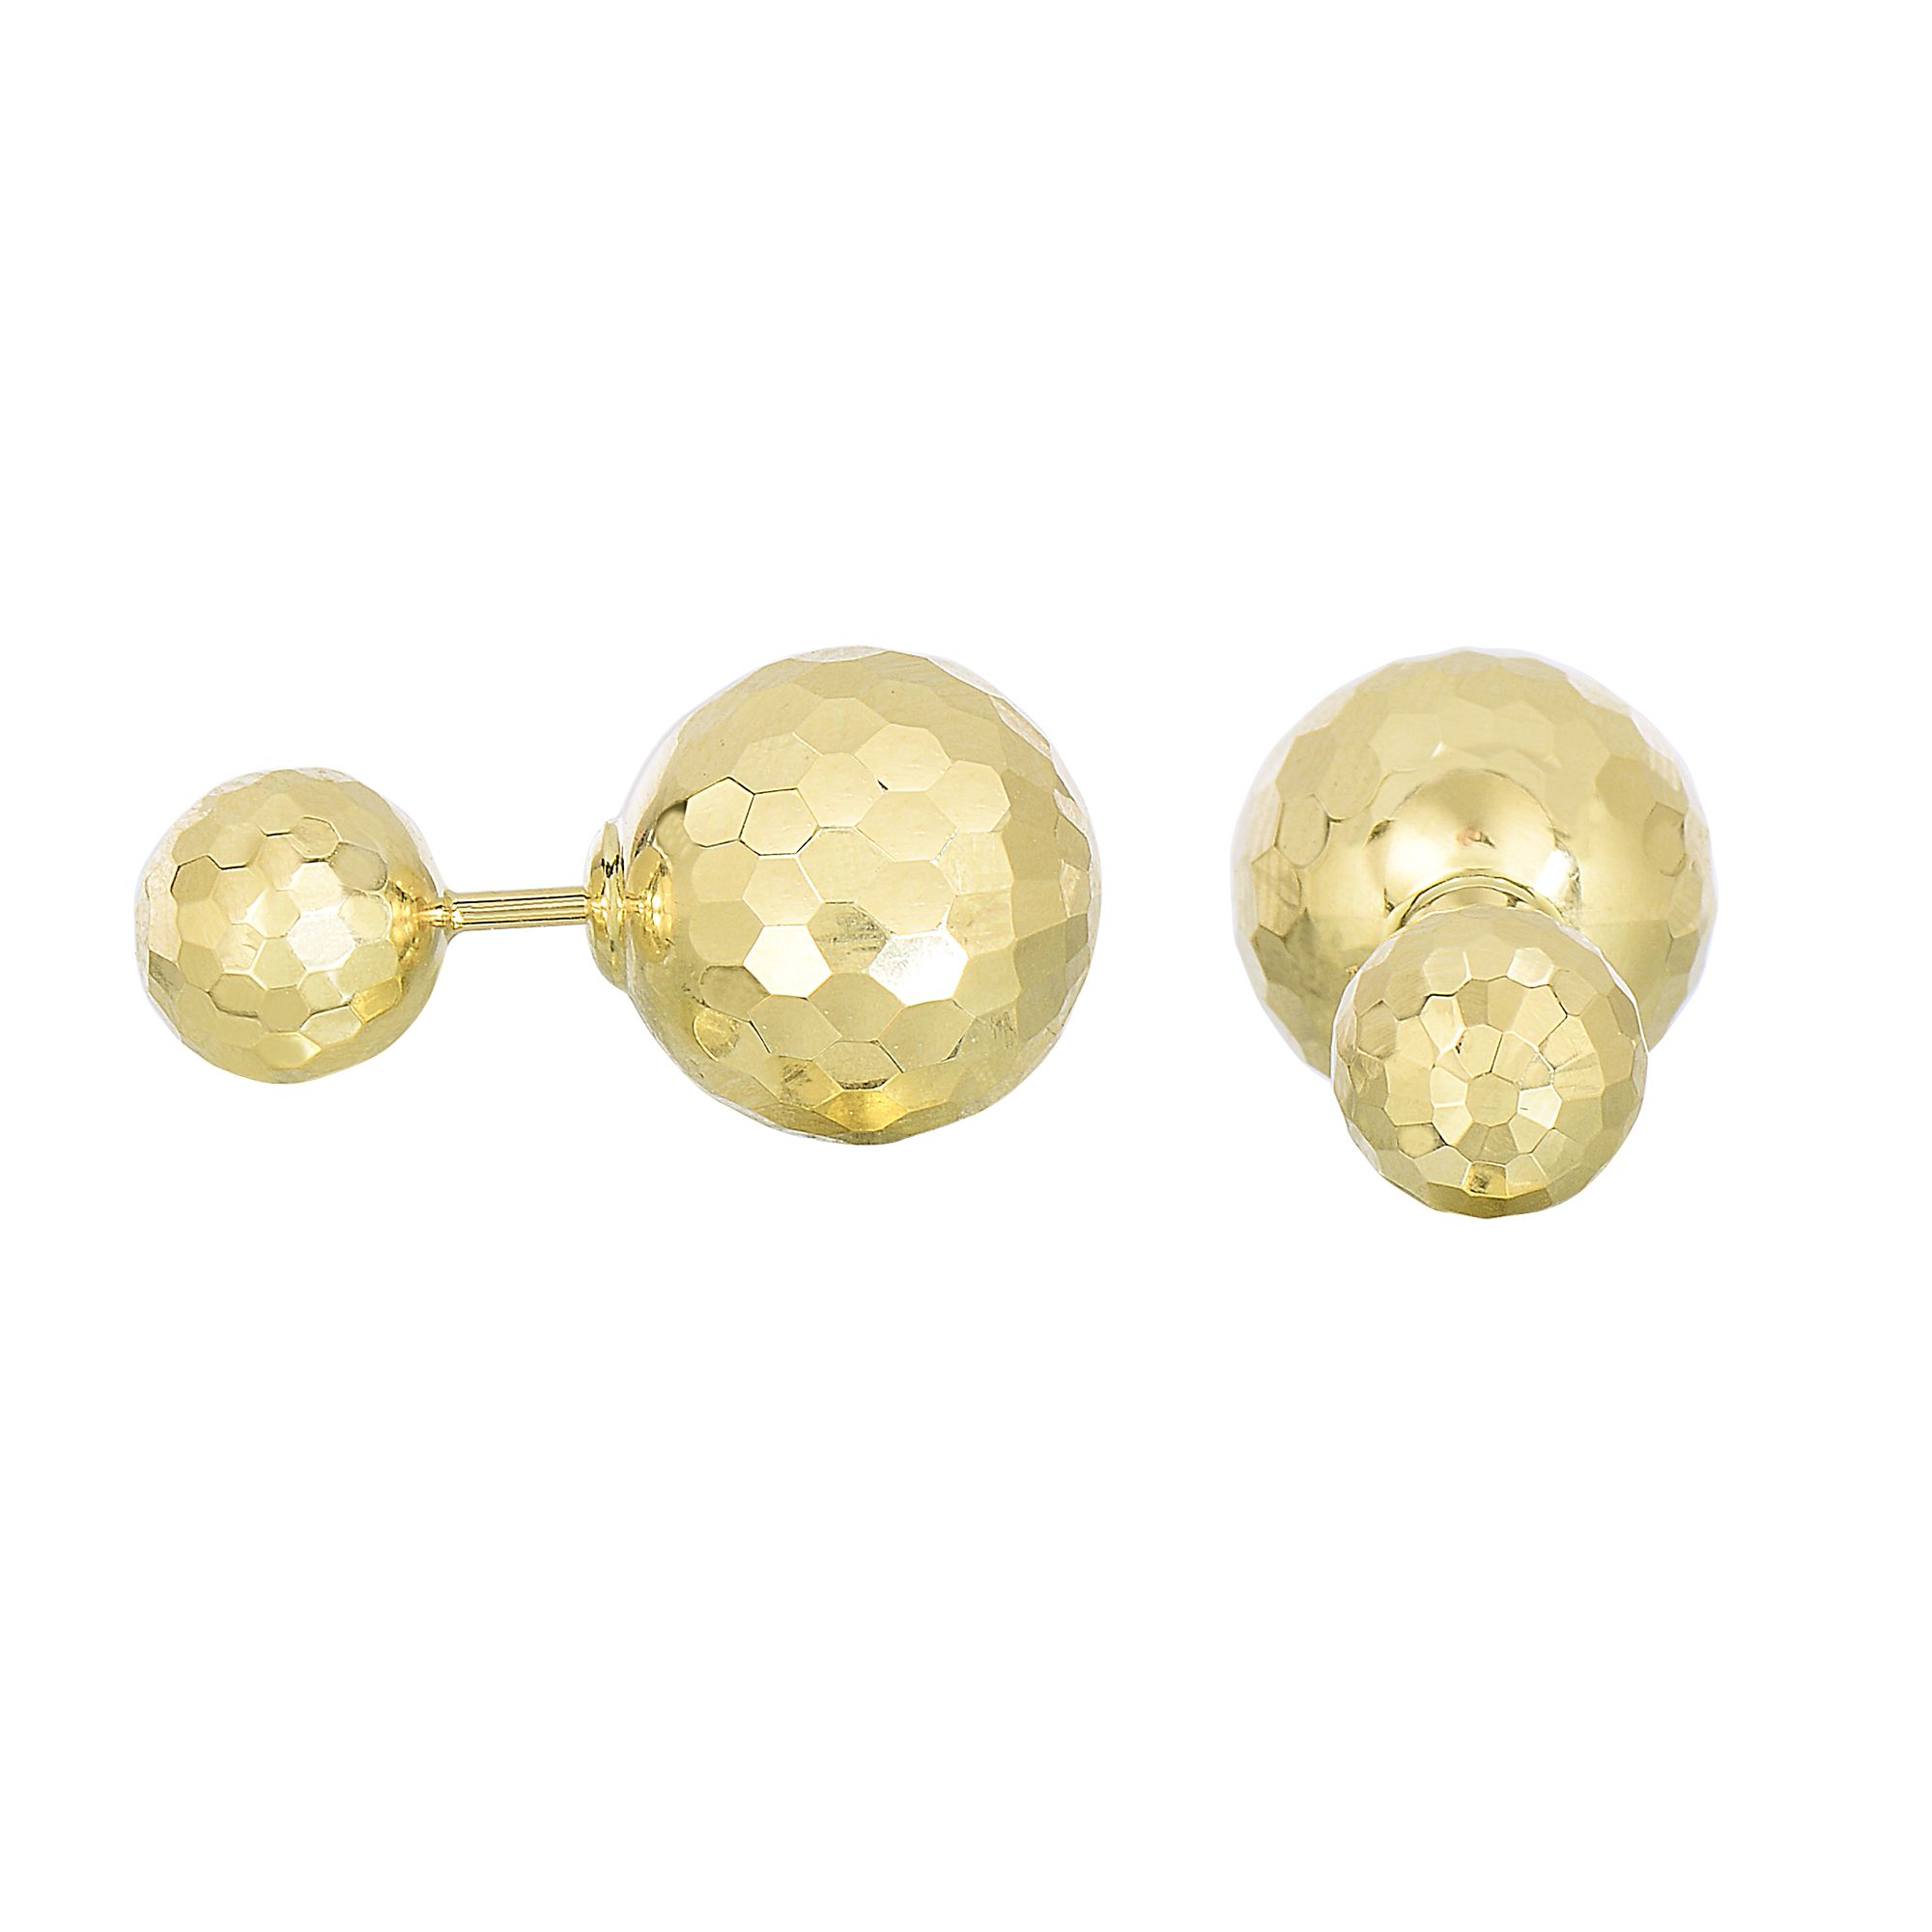 14 Karat Yellow Gold Diamond Cut Double Ball Stud Earrings